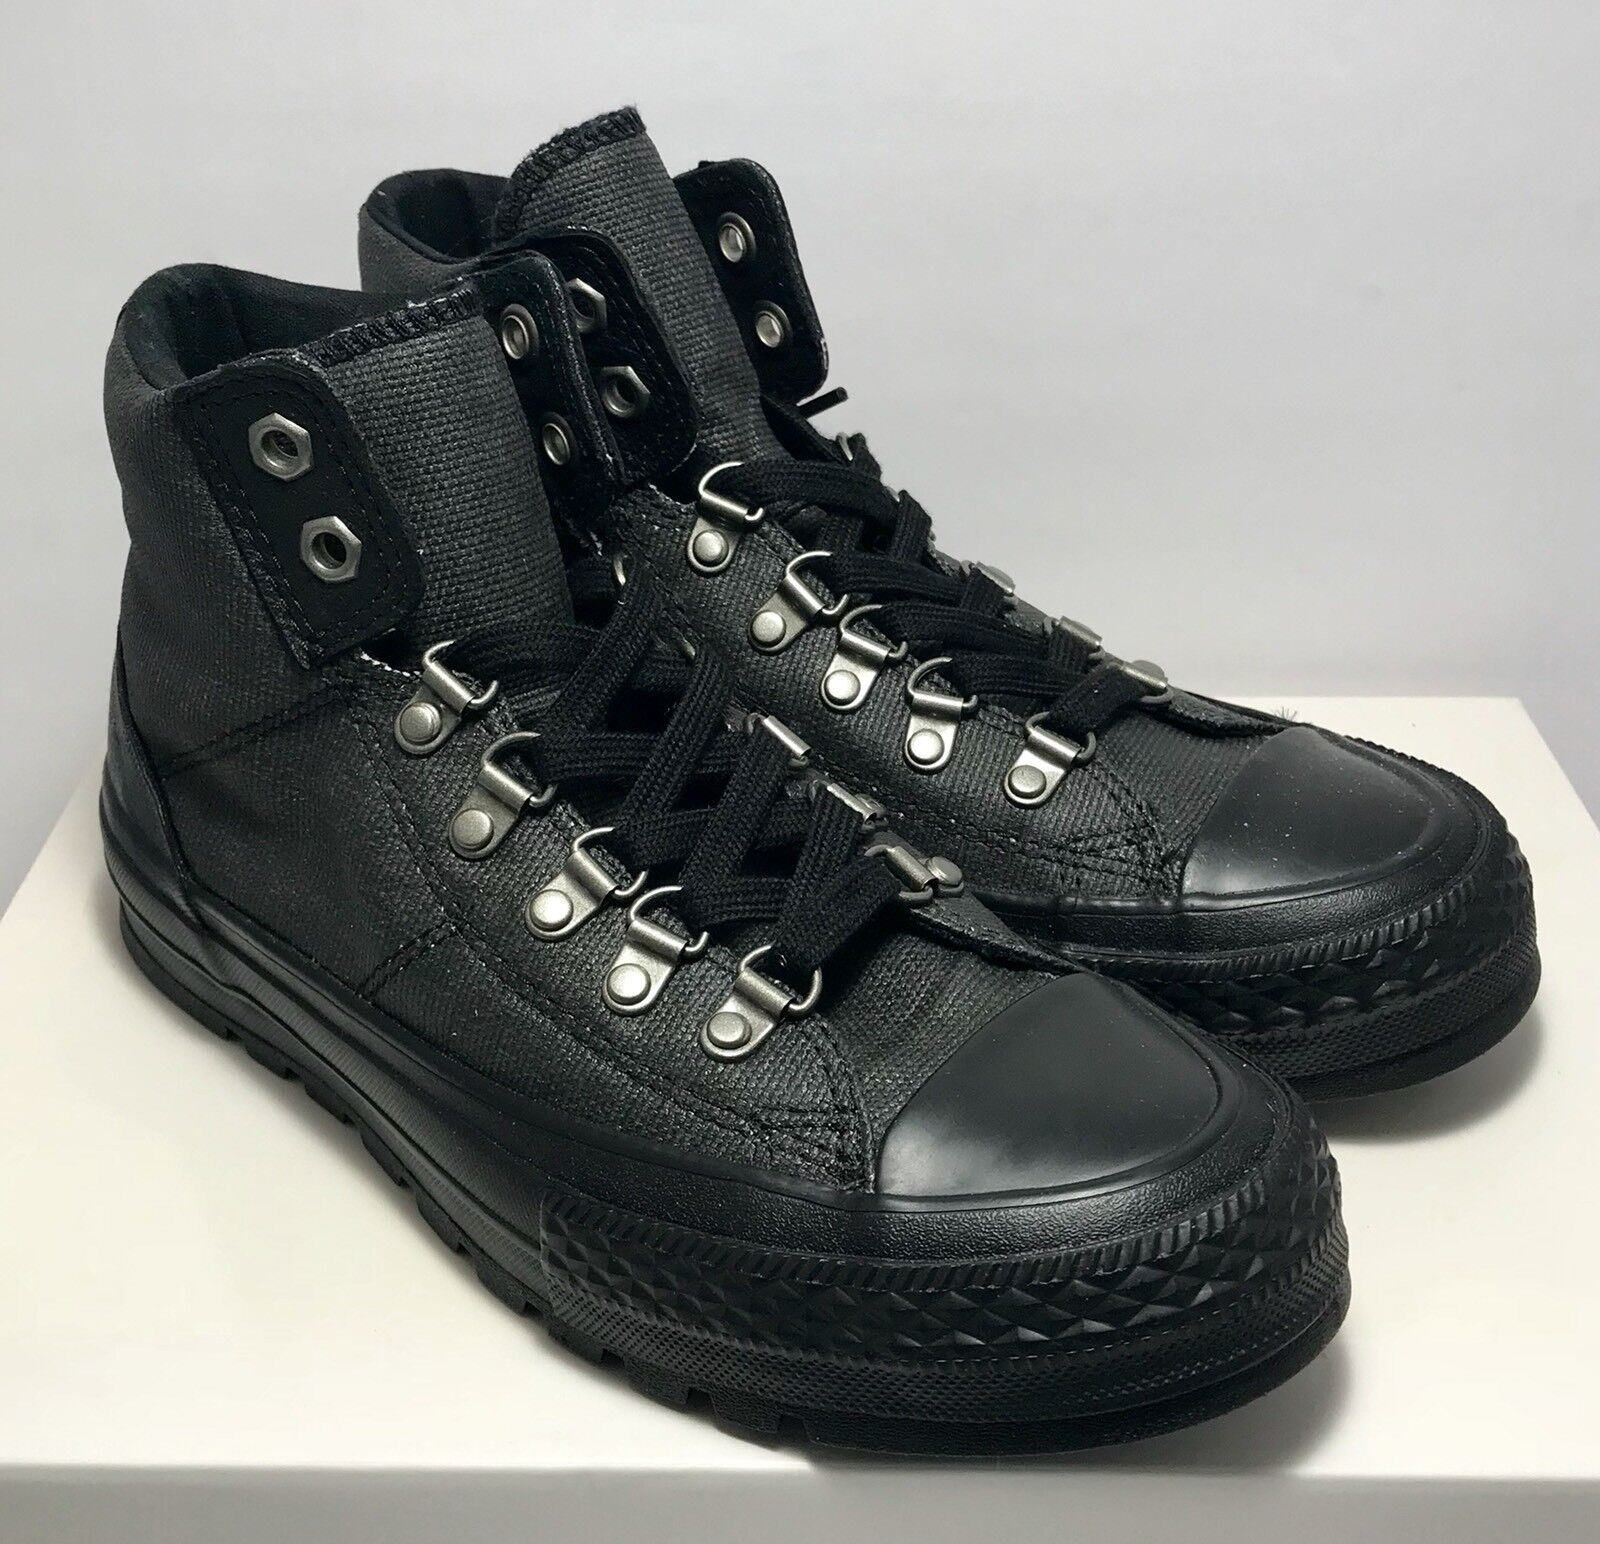 Converse Womens Size 6.5 Chuck Taylor All Star Street Hiker Boots Shoes Sneakers